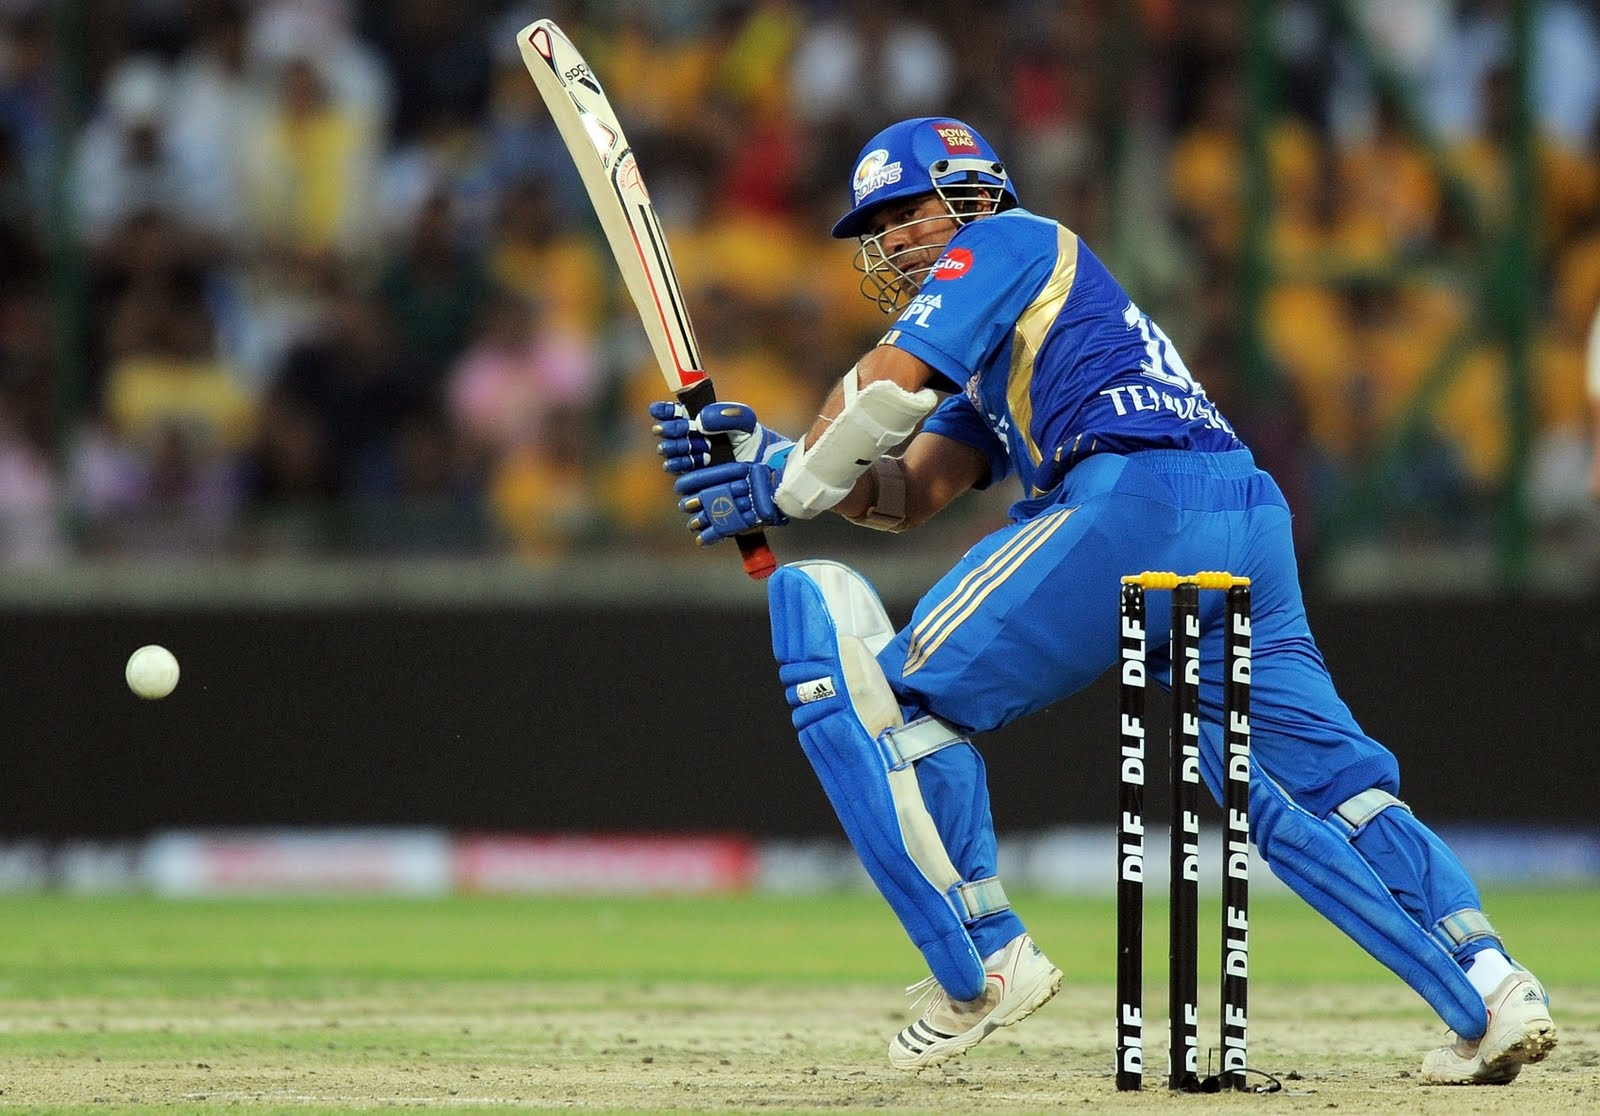 Tendulkar Playing Hd Images Wallpaper For Desktop Download